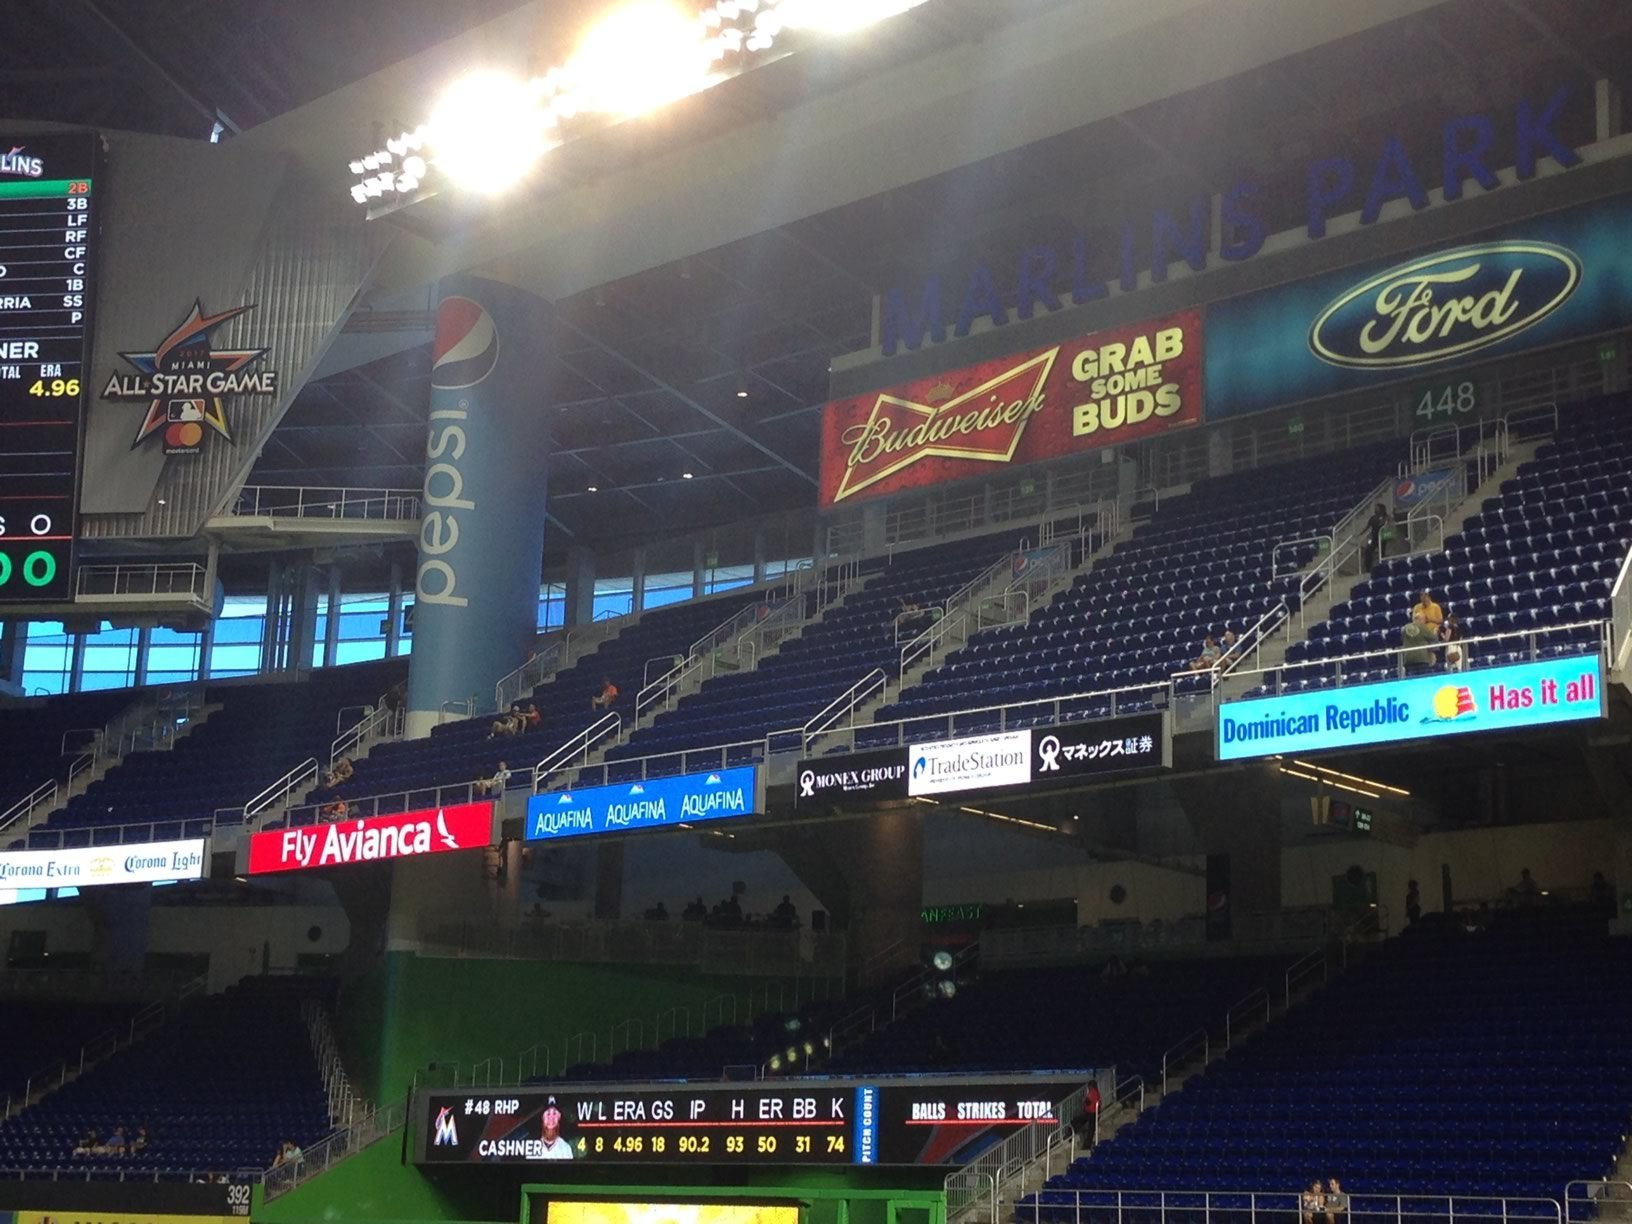 Marlins Park Home Run Porch Outfield Baseball Seating